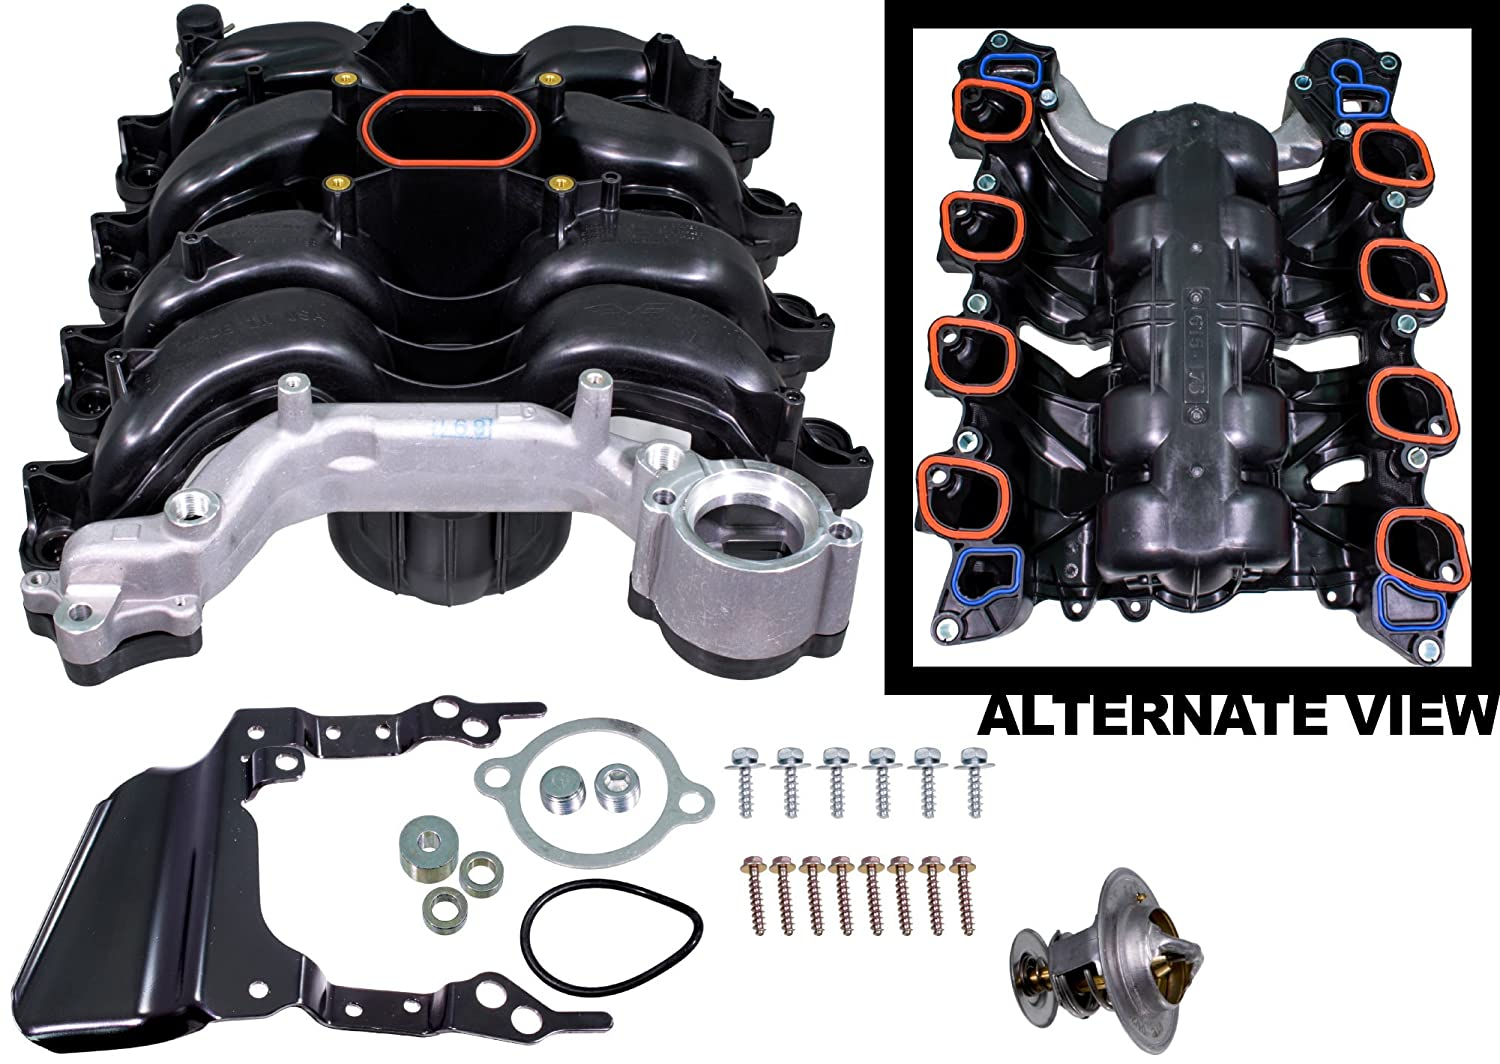 Amazon.com: APDTY 726286 Intake Manifold Kit w/Gaskets Fits 4.6L V8 Engine  99-04 Mustang 02 Explorer Mountaineer 00-11 Grand Marquis Crown Victoria  Town Car ...